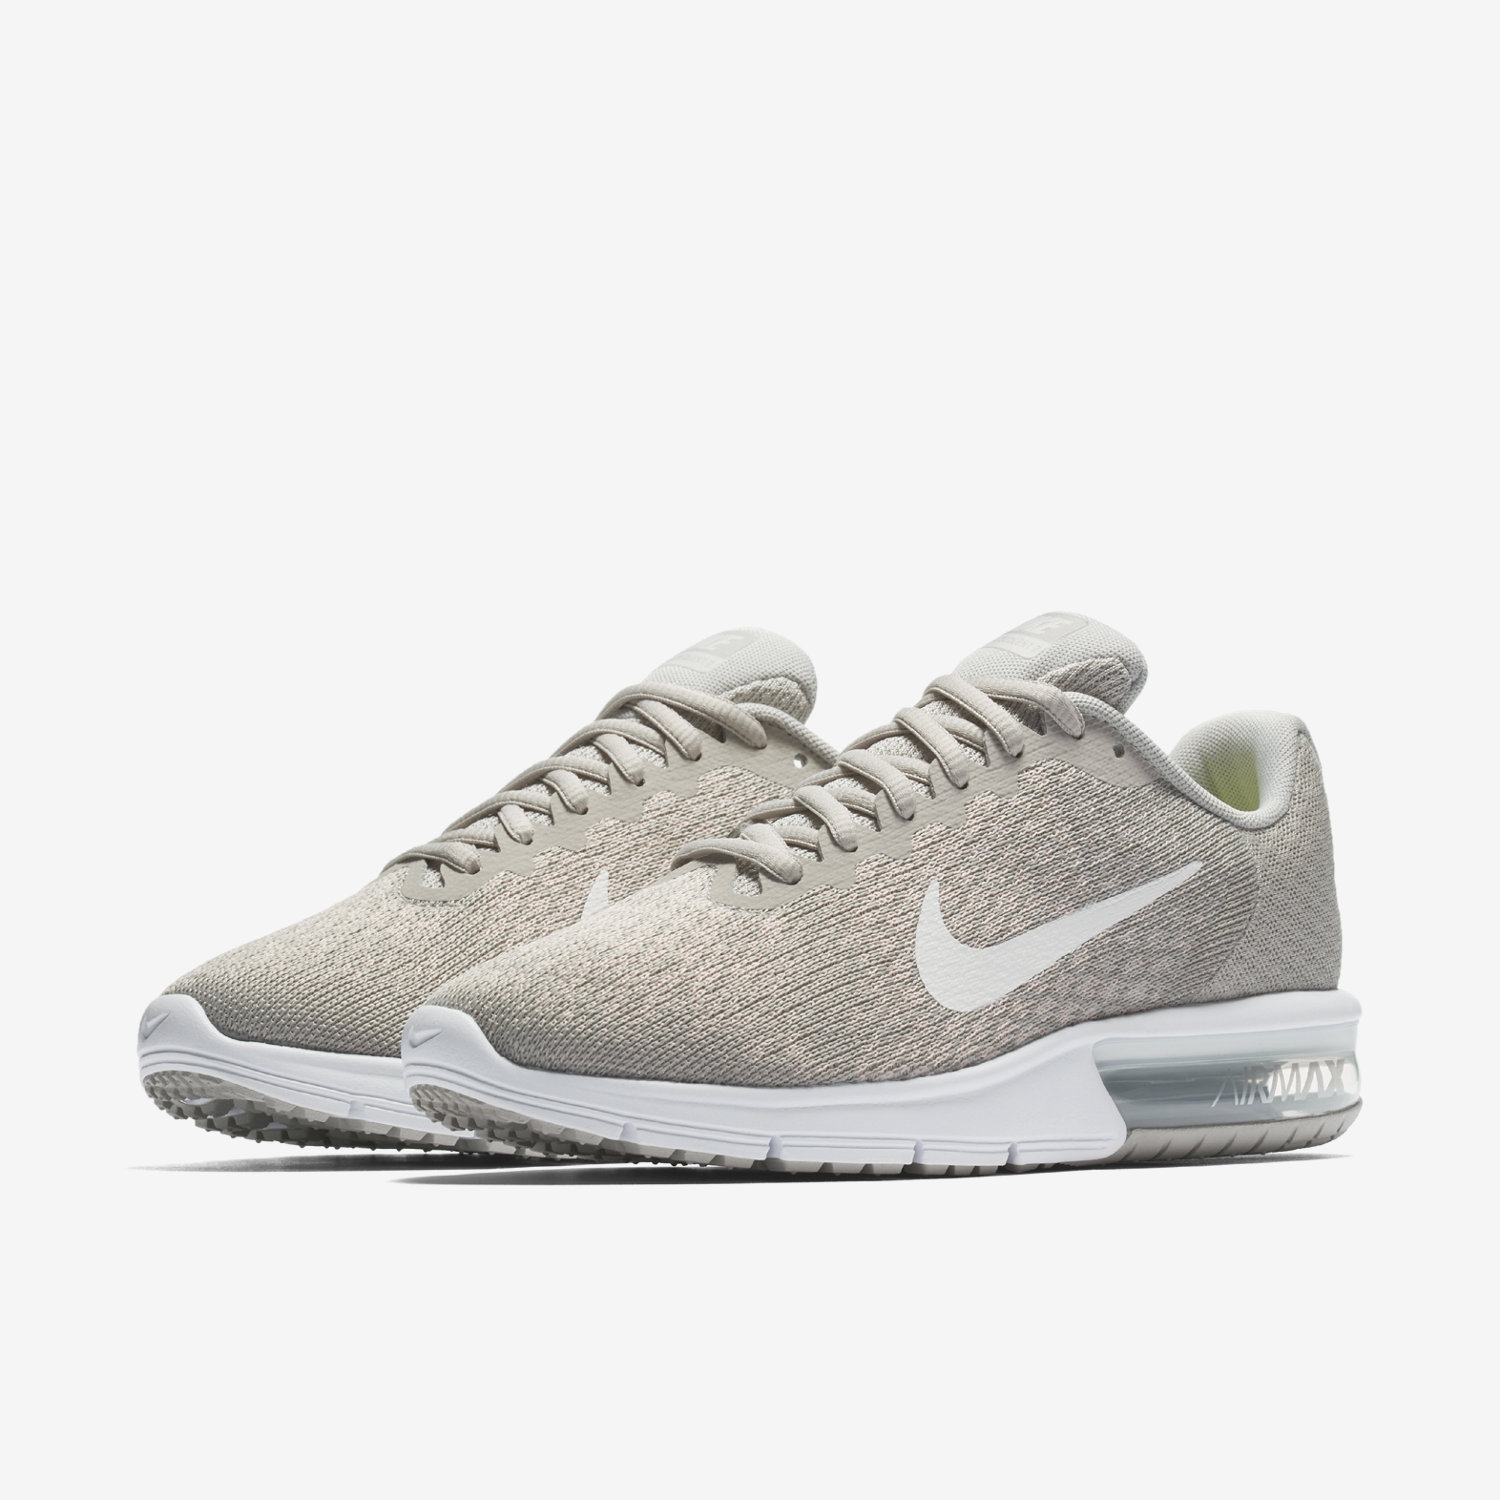 nike air max sequent. Black Bedroom Furniture Sets. Home Design Ideas